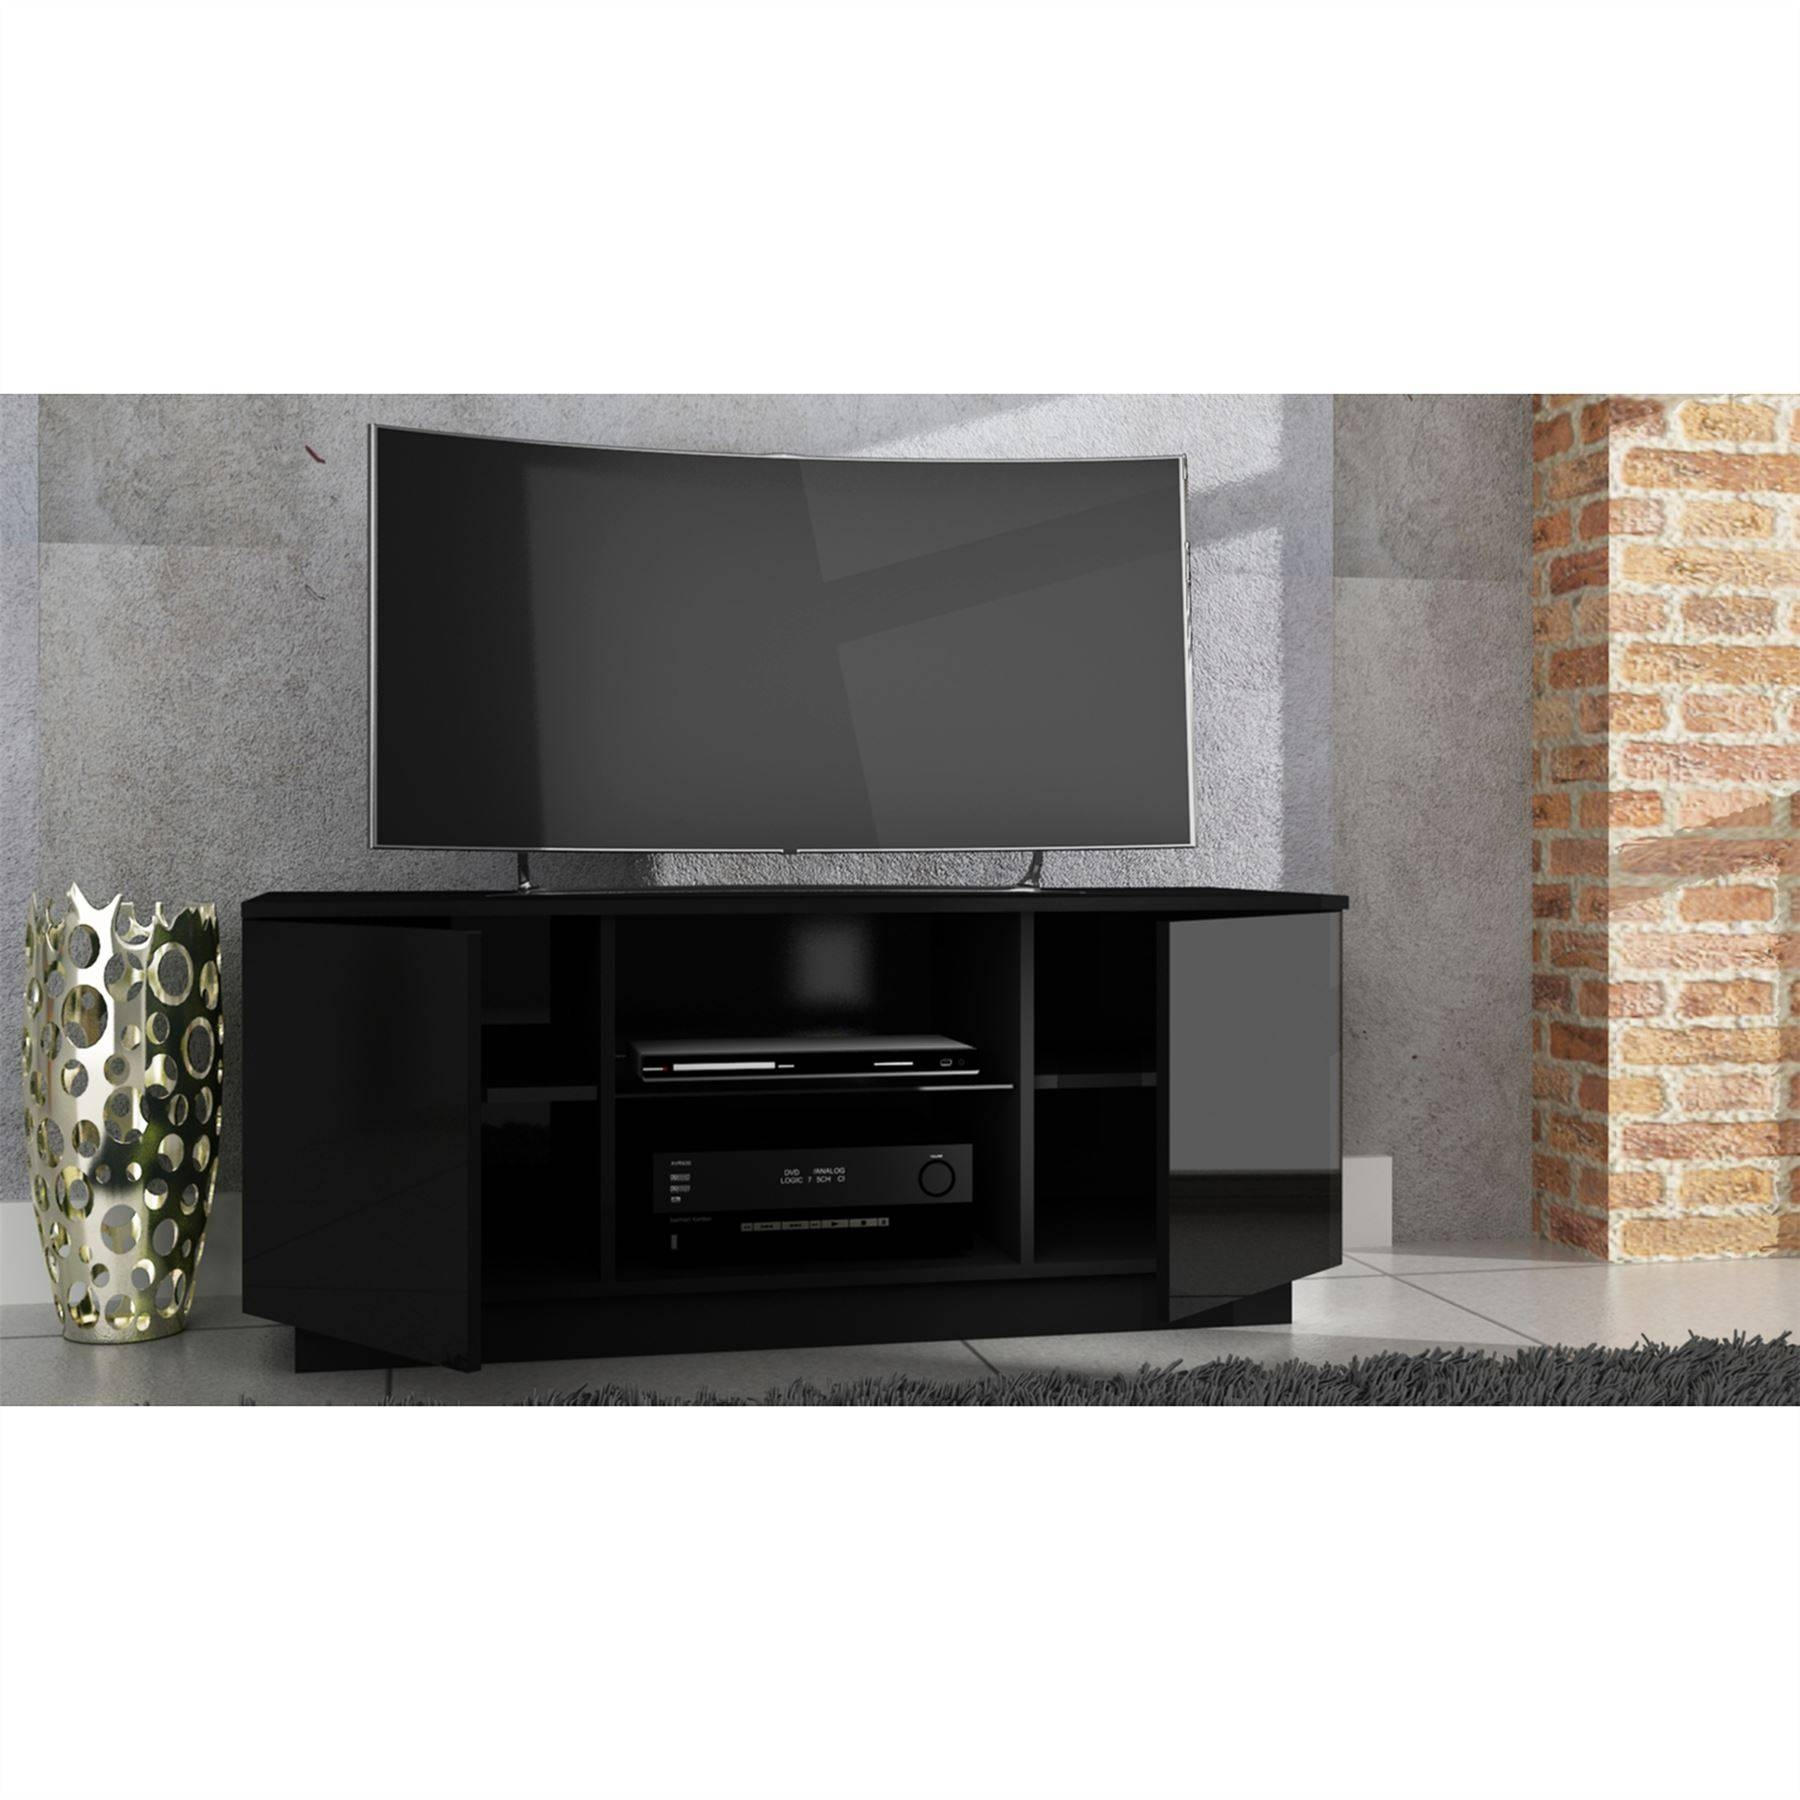 Bench. High Gloss Tv Bench: Modern Tv Stand Cm High Gloss Cabinet for Black High Gloss Corner Tv Unit (Image 2 of 15)